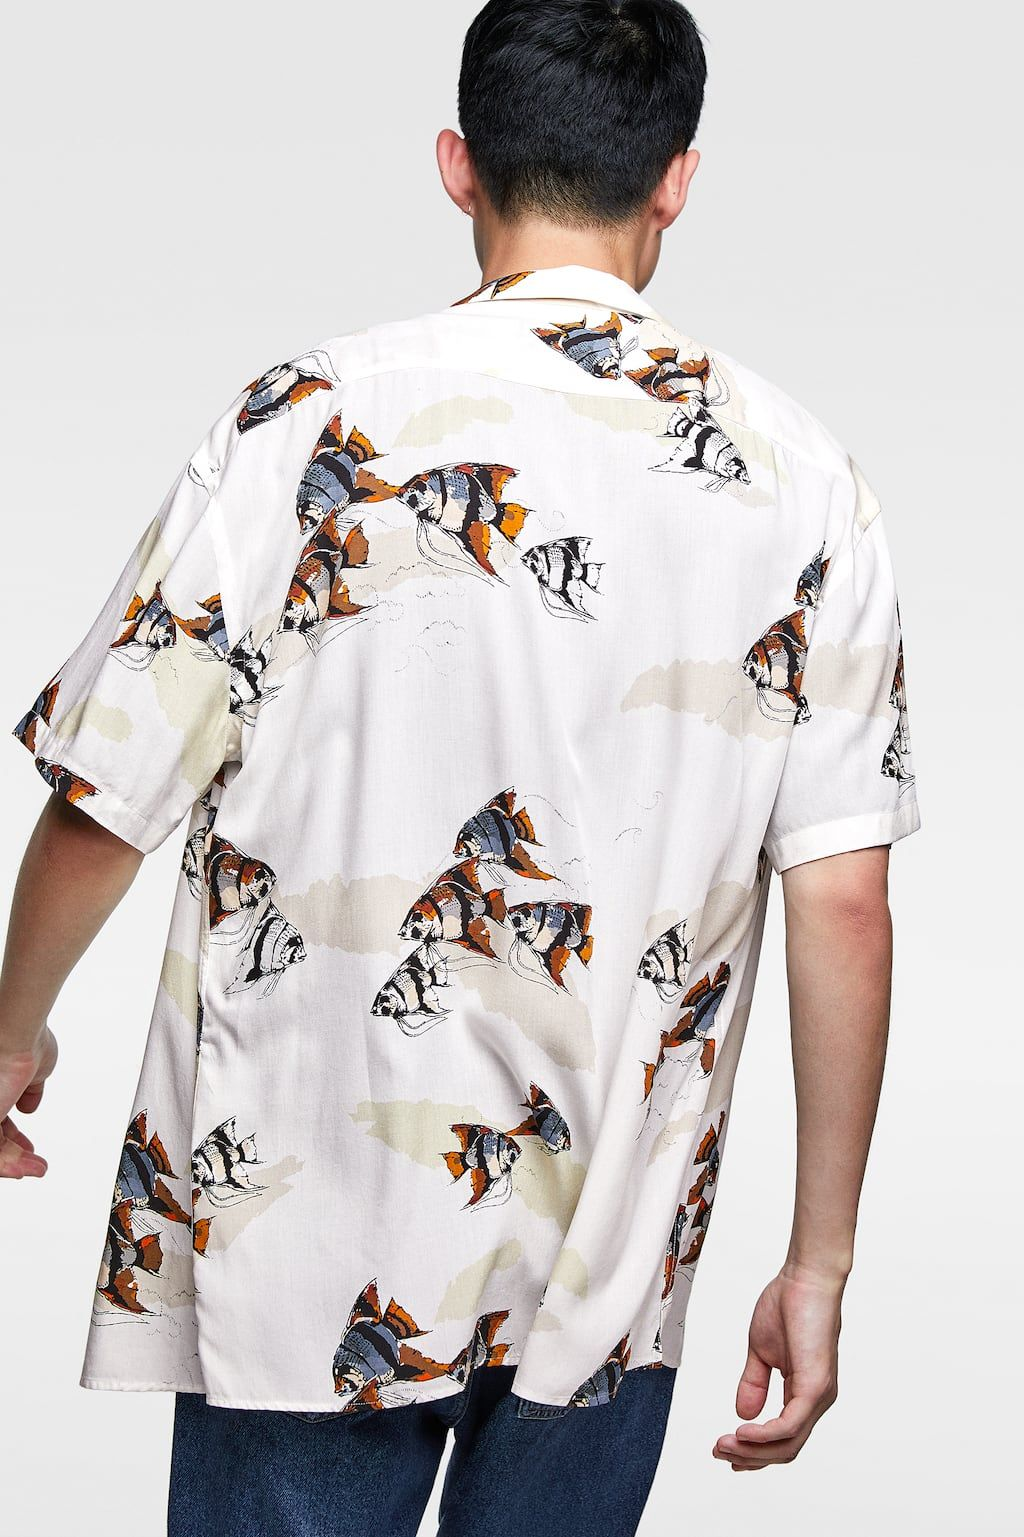 Fish Y Ropa Style CamisasCamisas ShirtBaby's Flowy Hombre c45qARL3jS